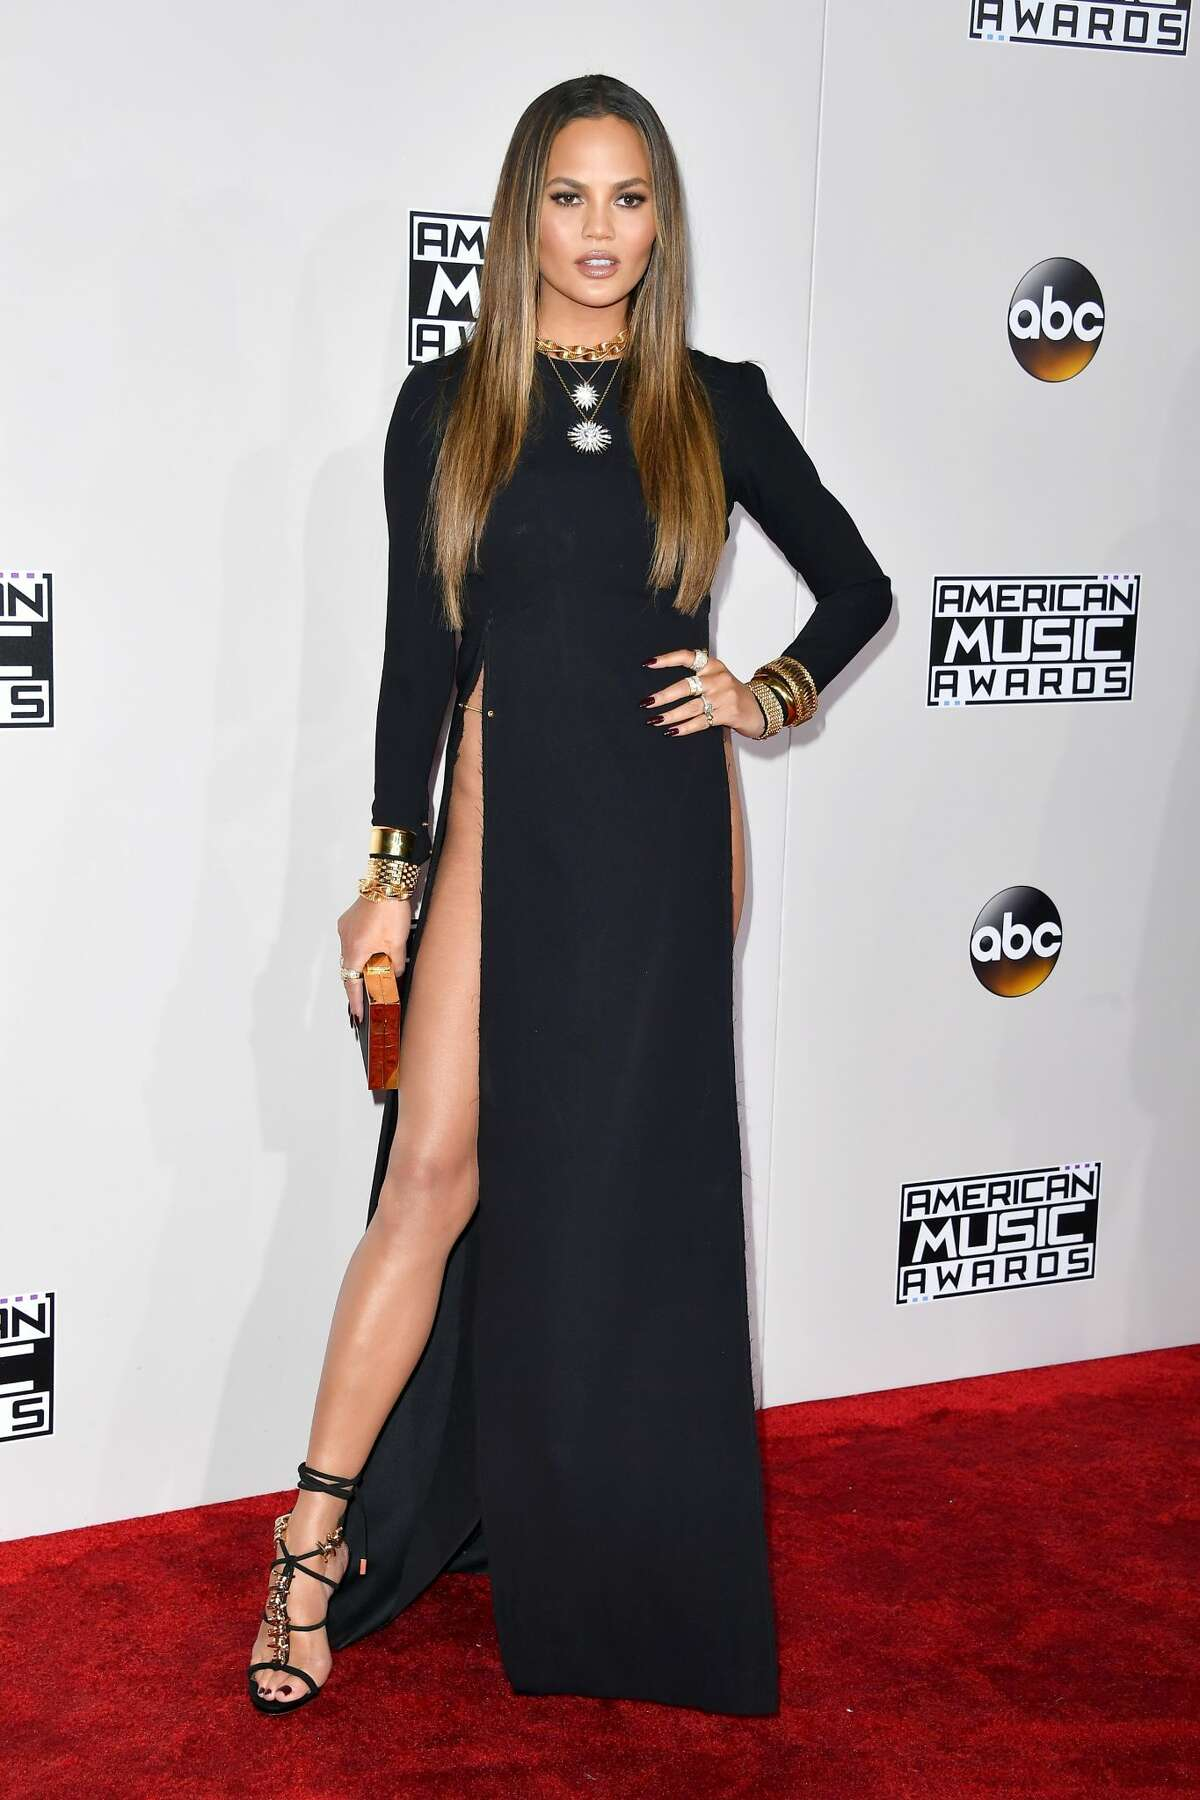 Model Chrissy Teigen attends the 2016 American Music Awards at Microsoft Theater.